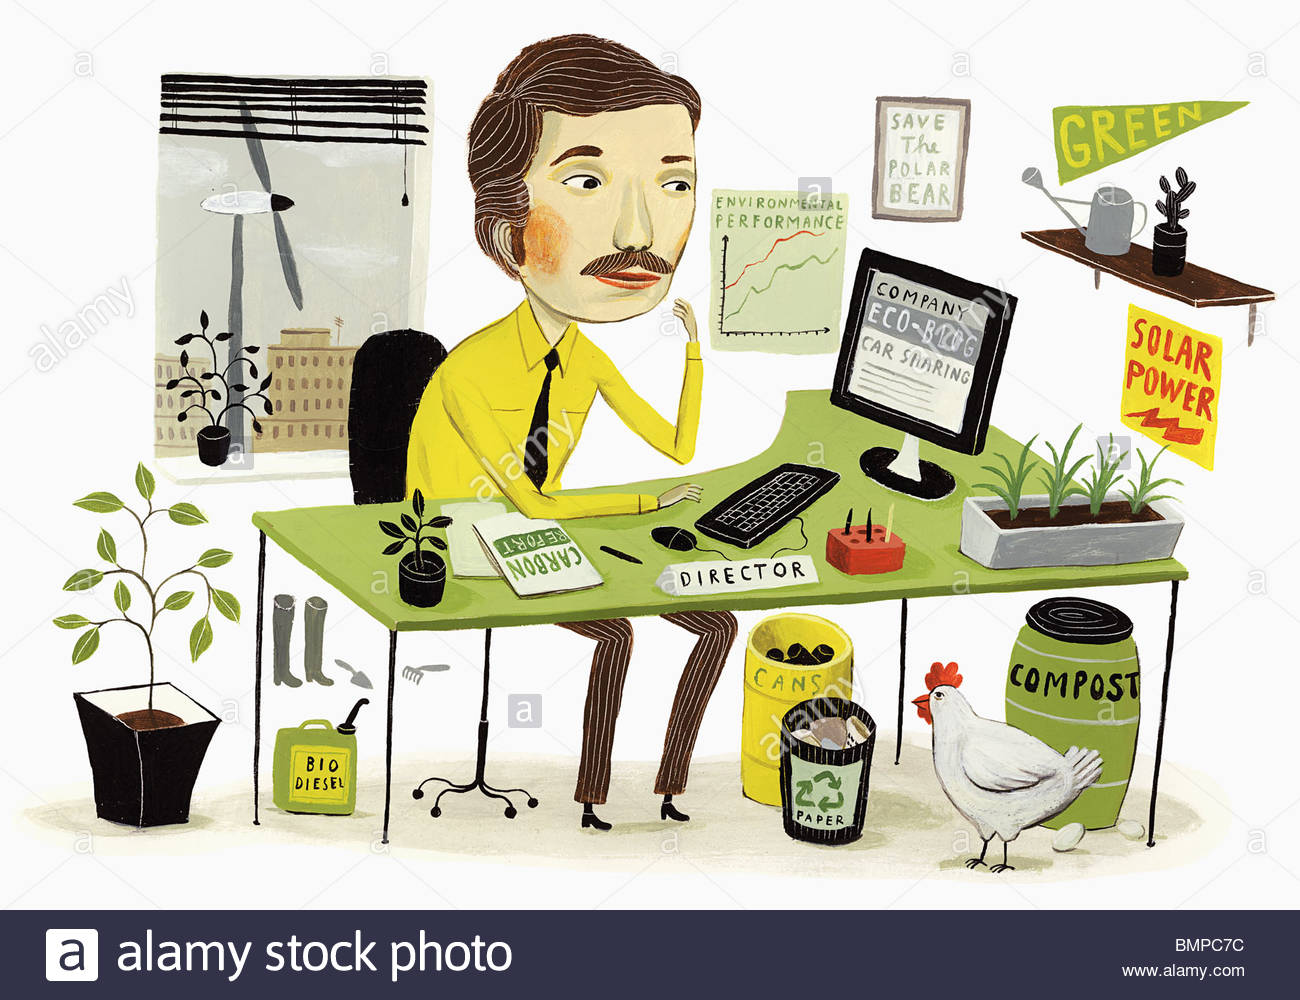 Eco-friendly businessman working in office - Stock Image